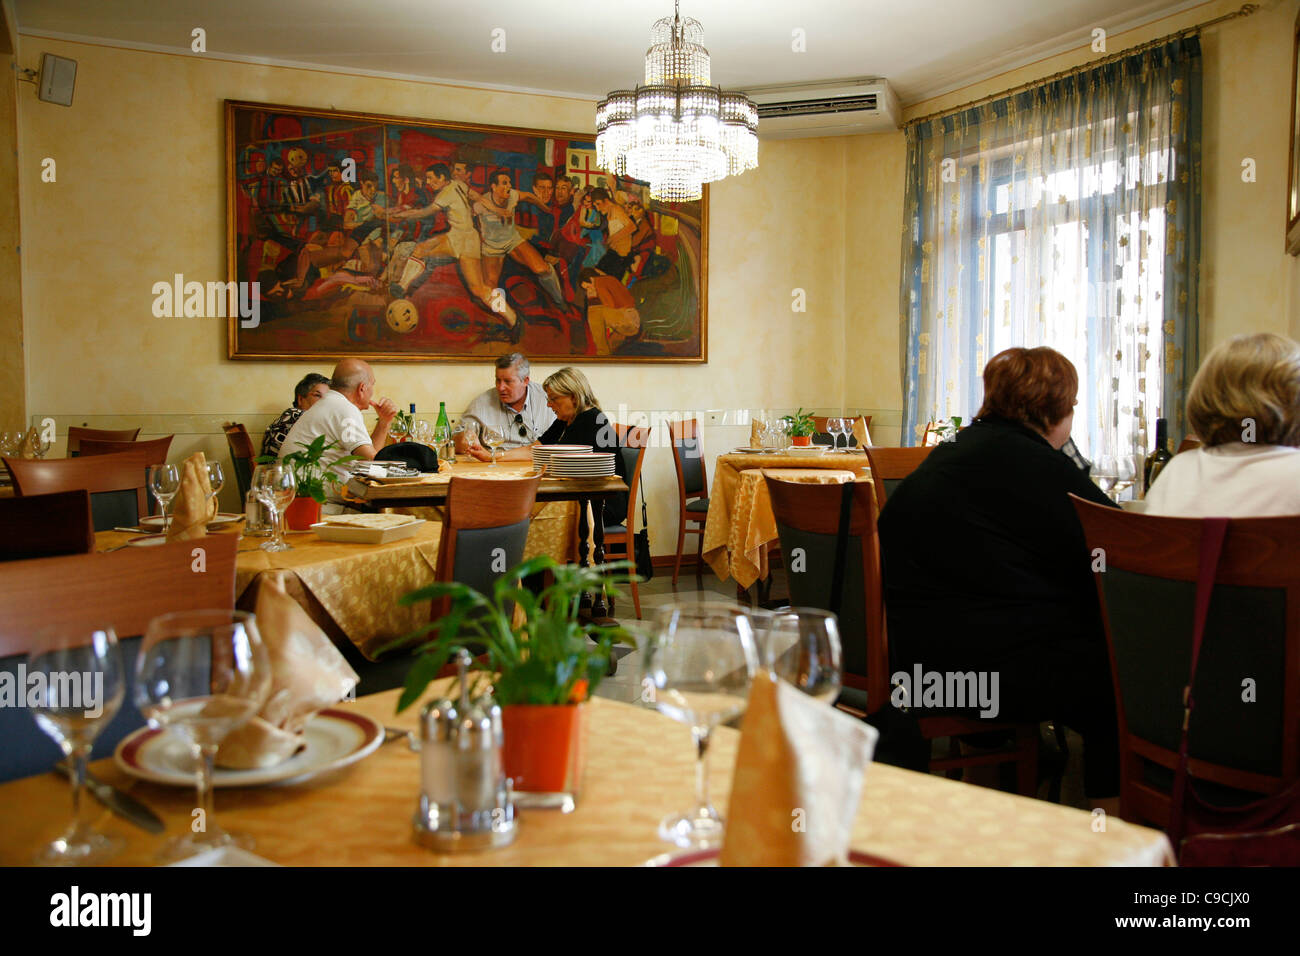 Caminetto D'oro Bologna Caminetto Stock Photos Caminetto Stock Images Alamy